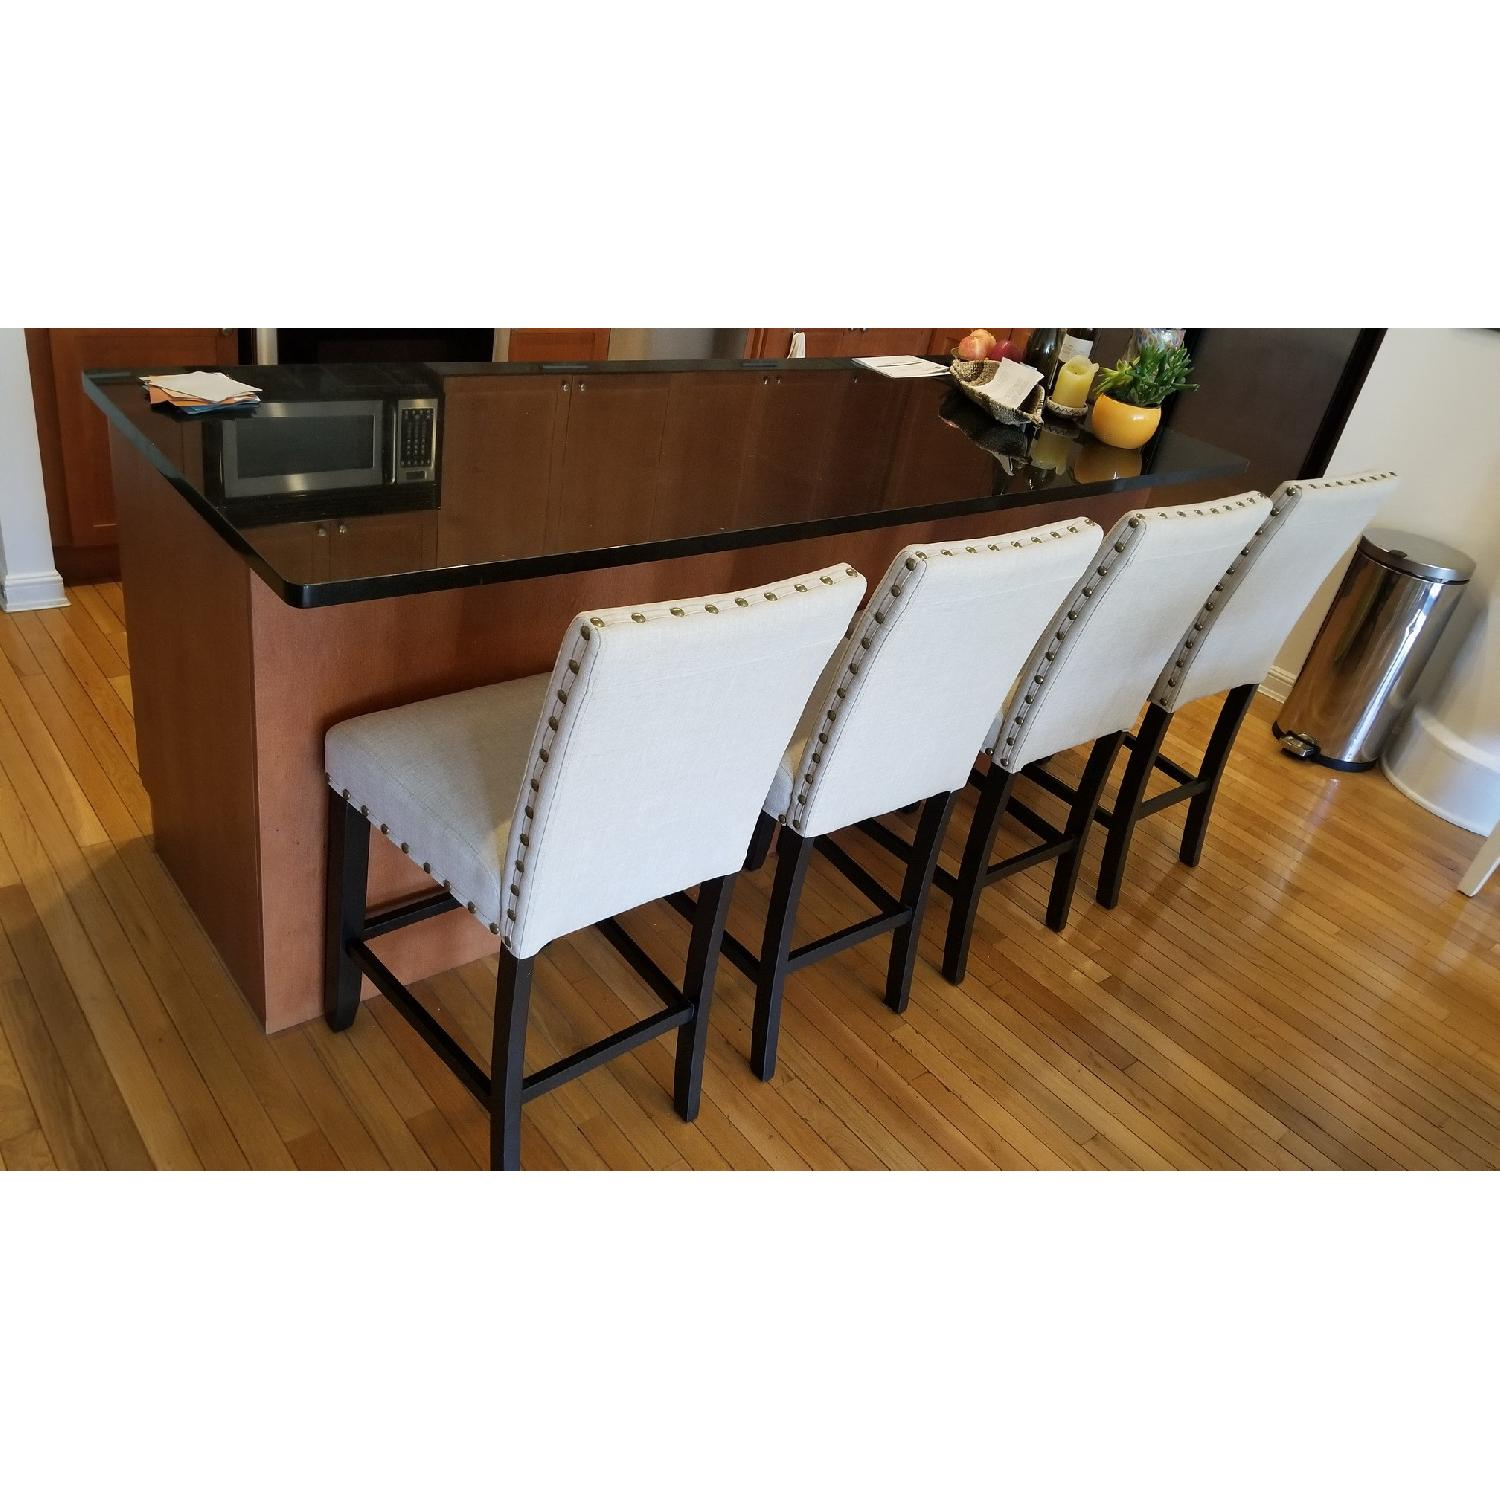 Upholstered Counter Height Stools - image-2